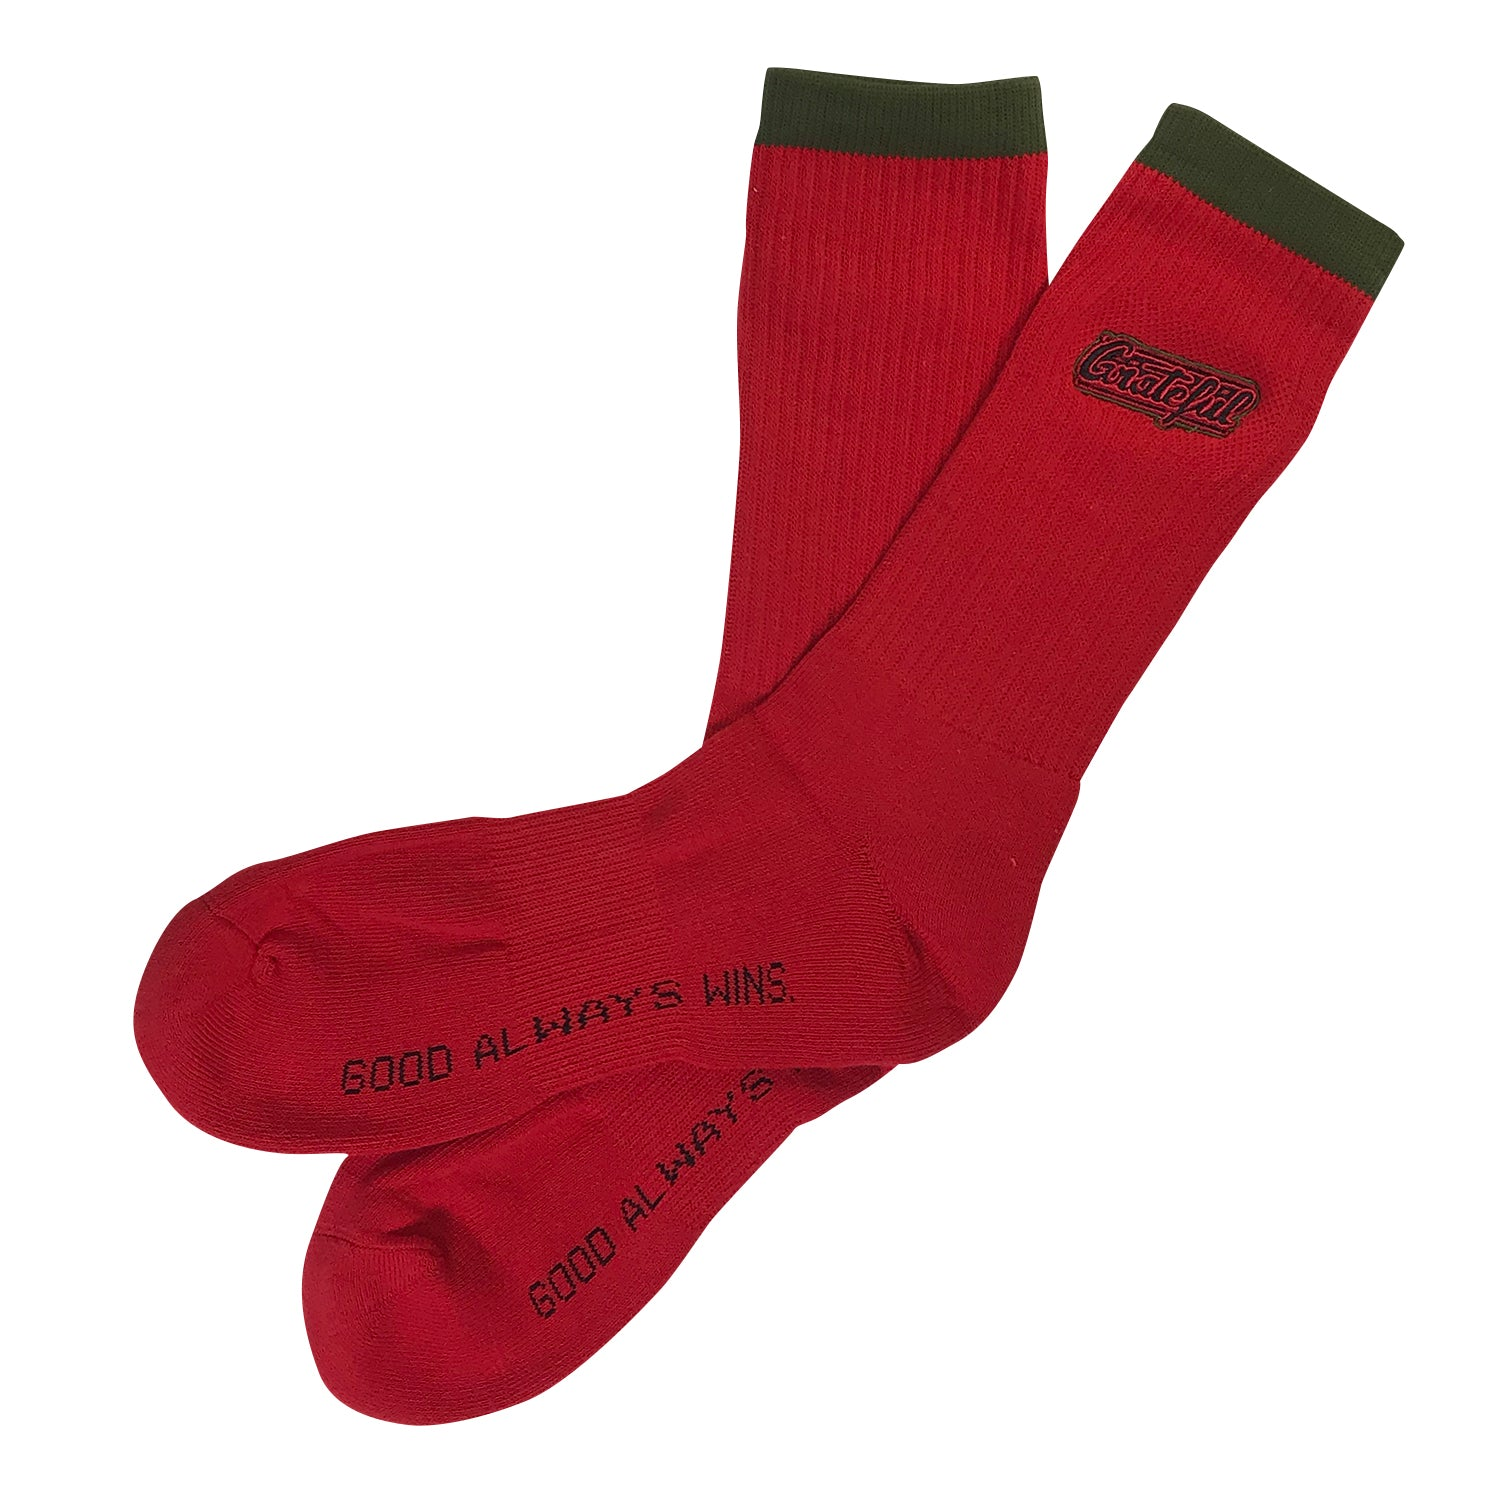 Tribeca Embroidered Socks - Red